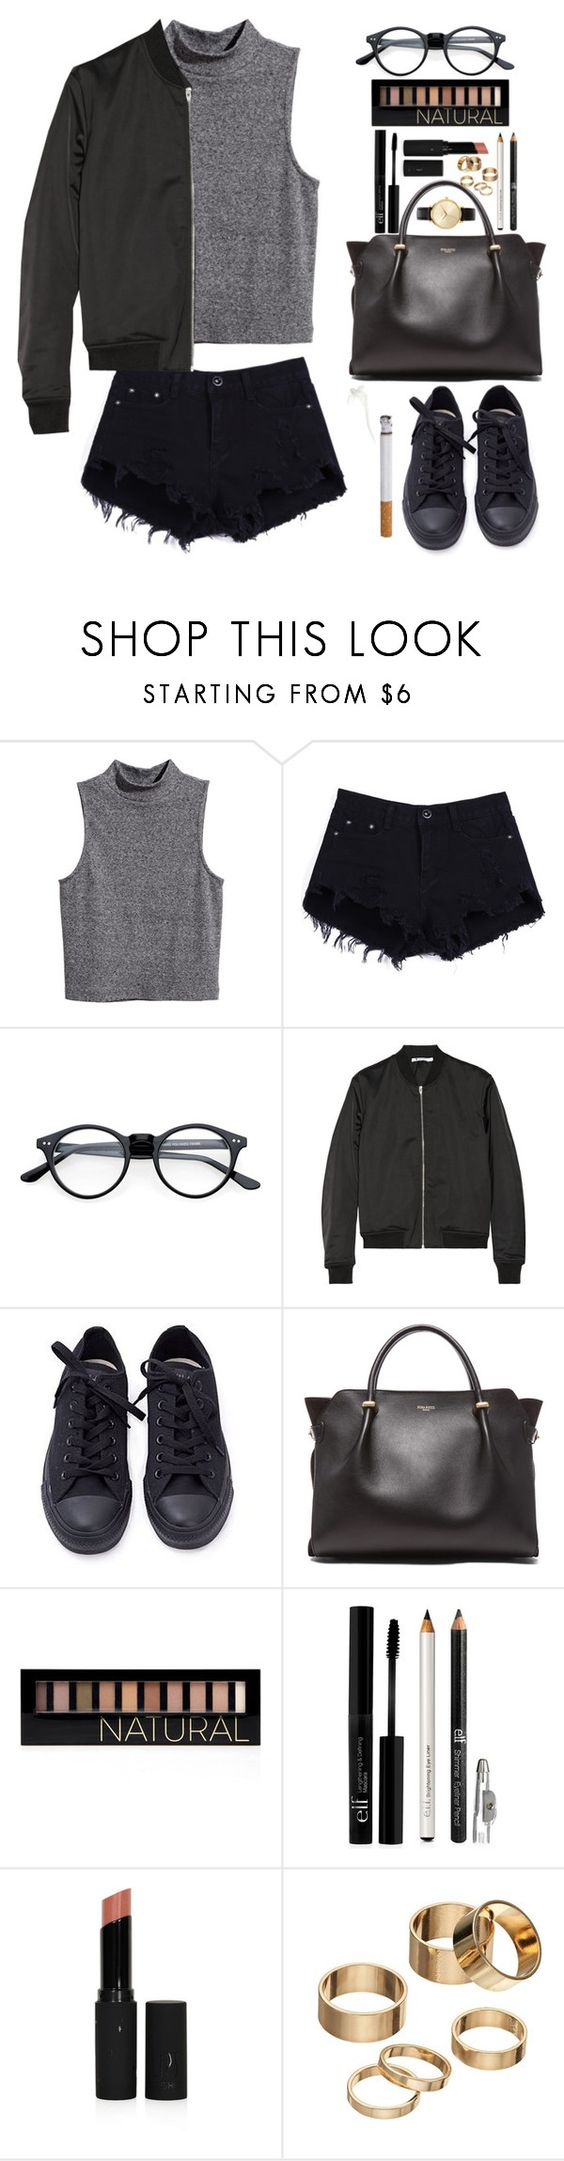 """""""09.26.16"""" by lea-maire ❤ liked on Polyvore featuring H&M, T By Alexander Wang, Converse, Nina Ricci, Forever 21, Topshop, Apt. 9 and Nixon"""